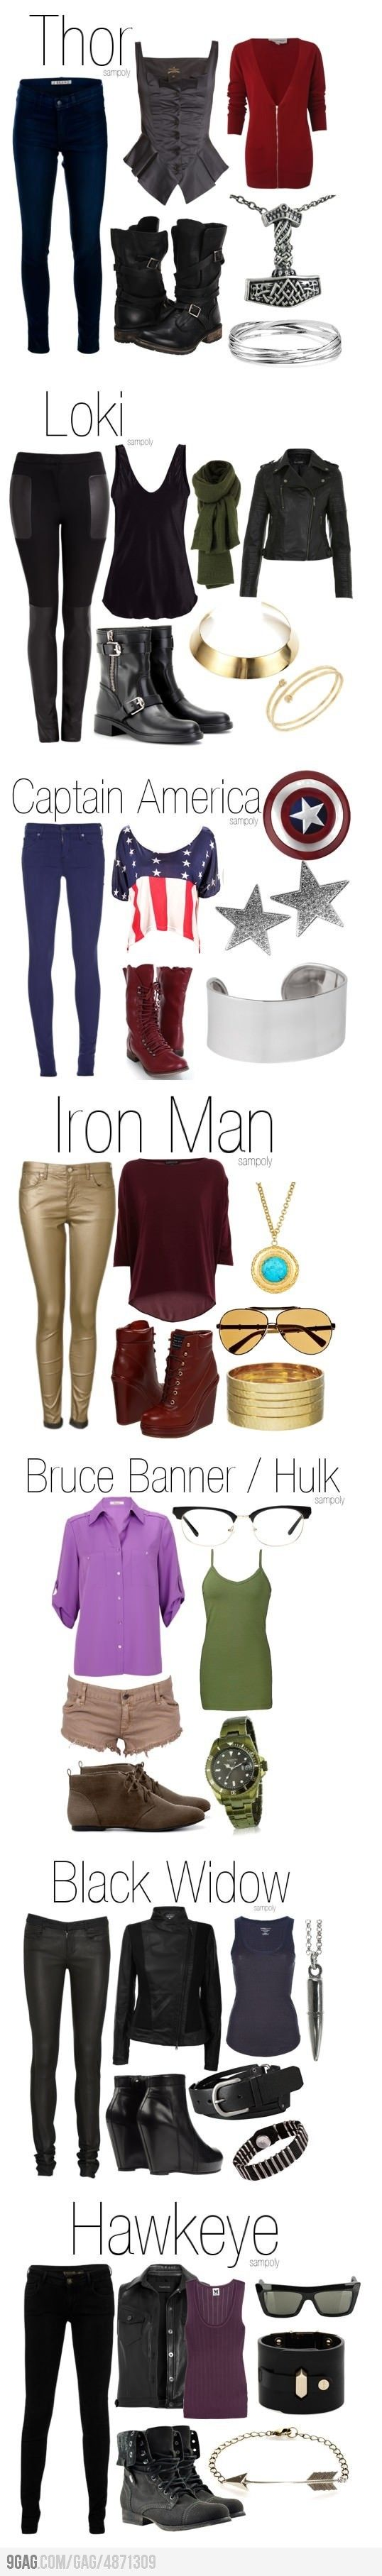 Avengers-inspired outfits